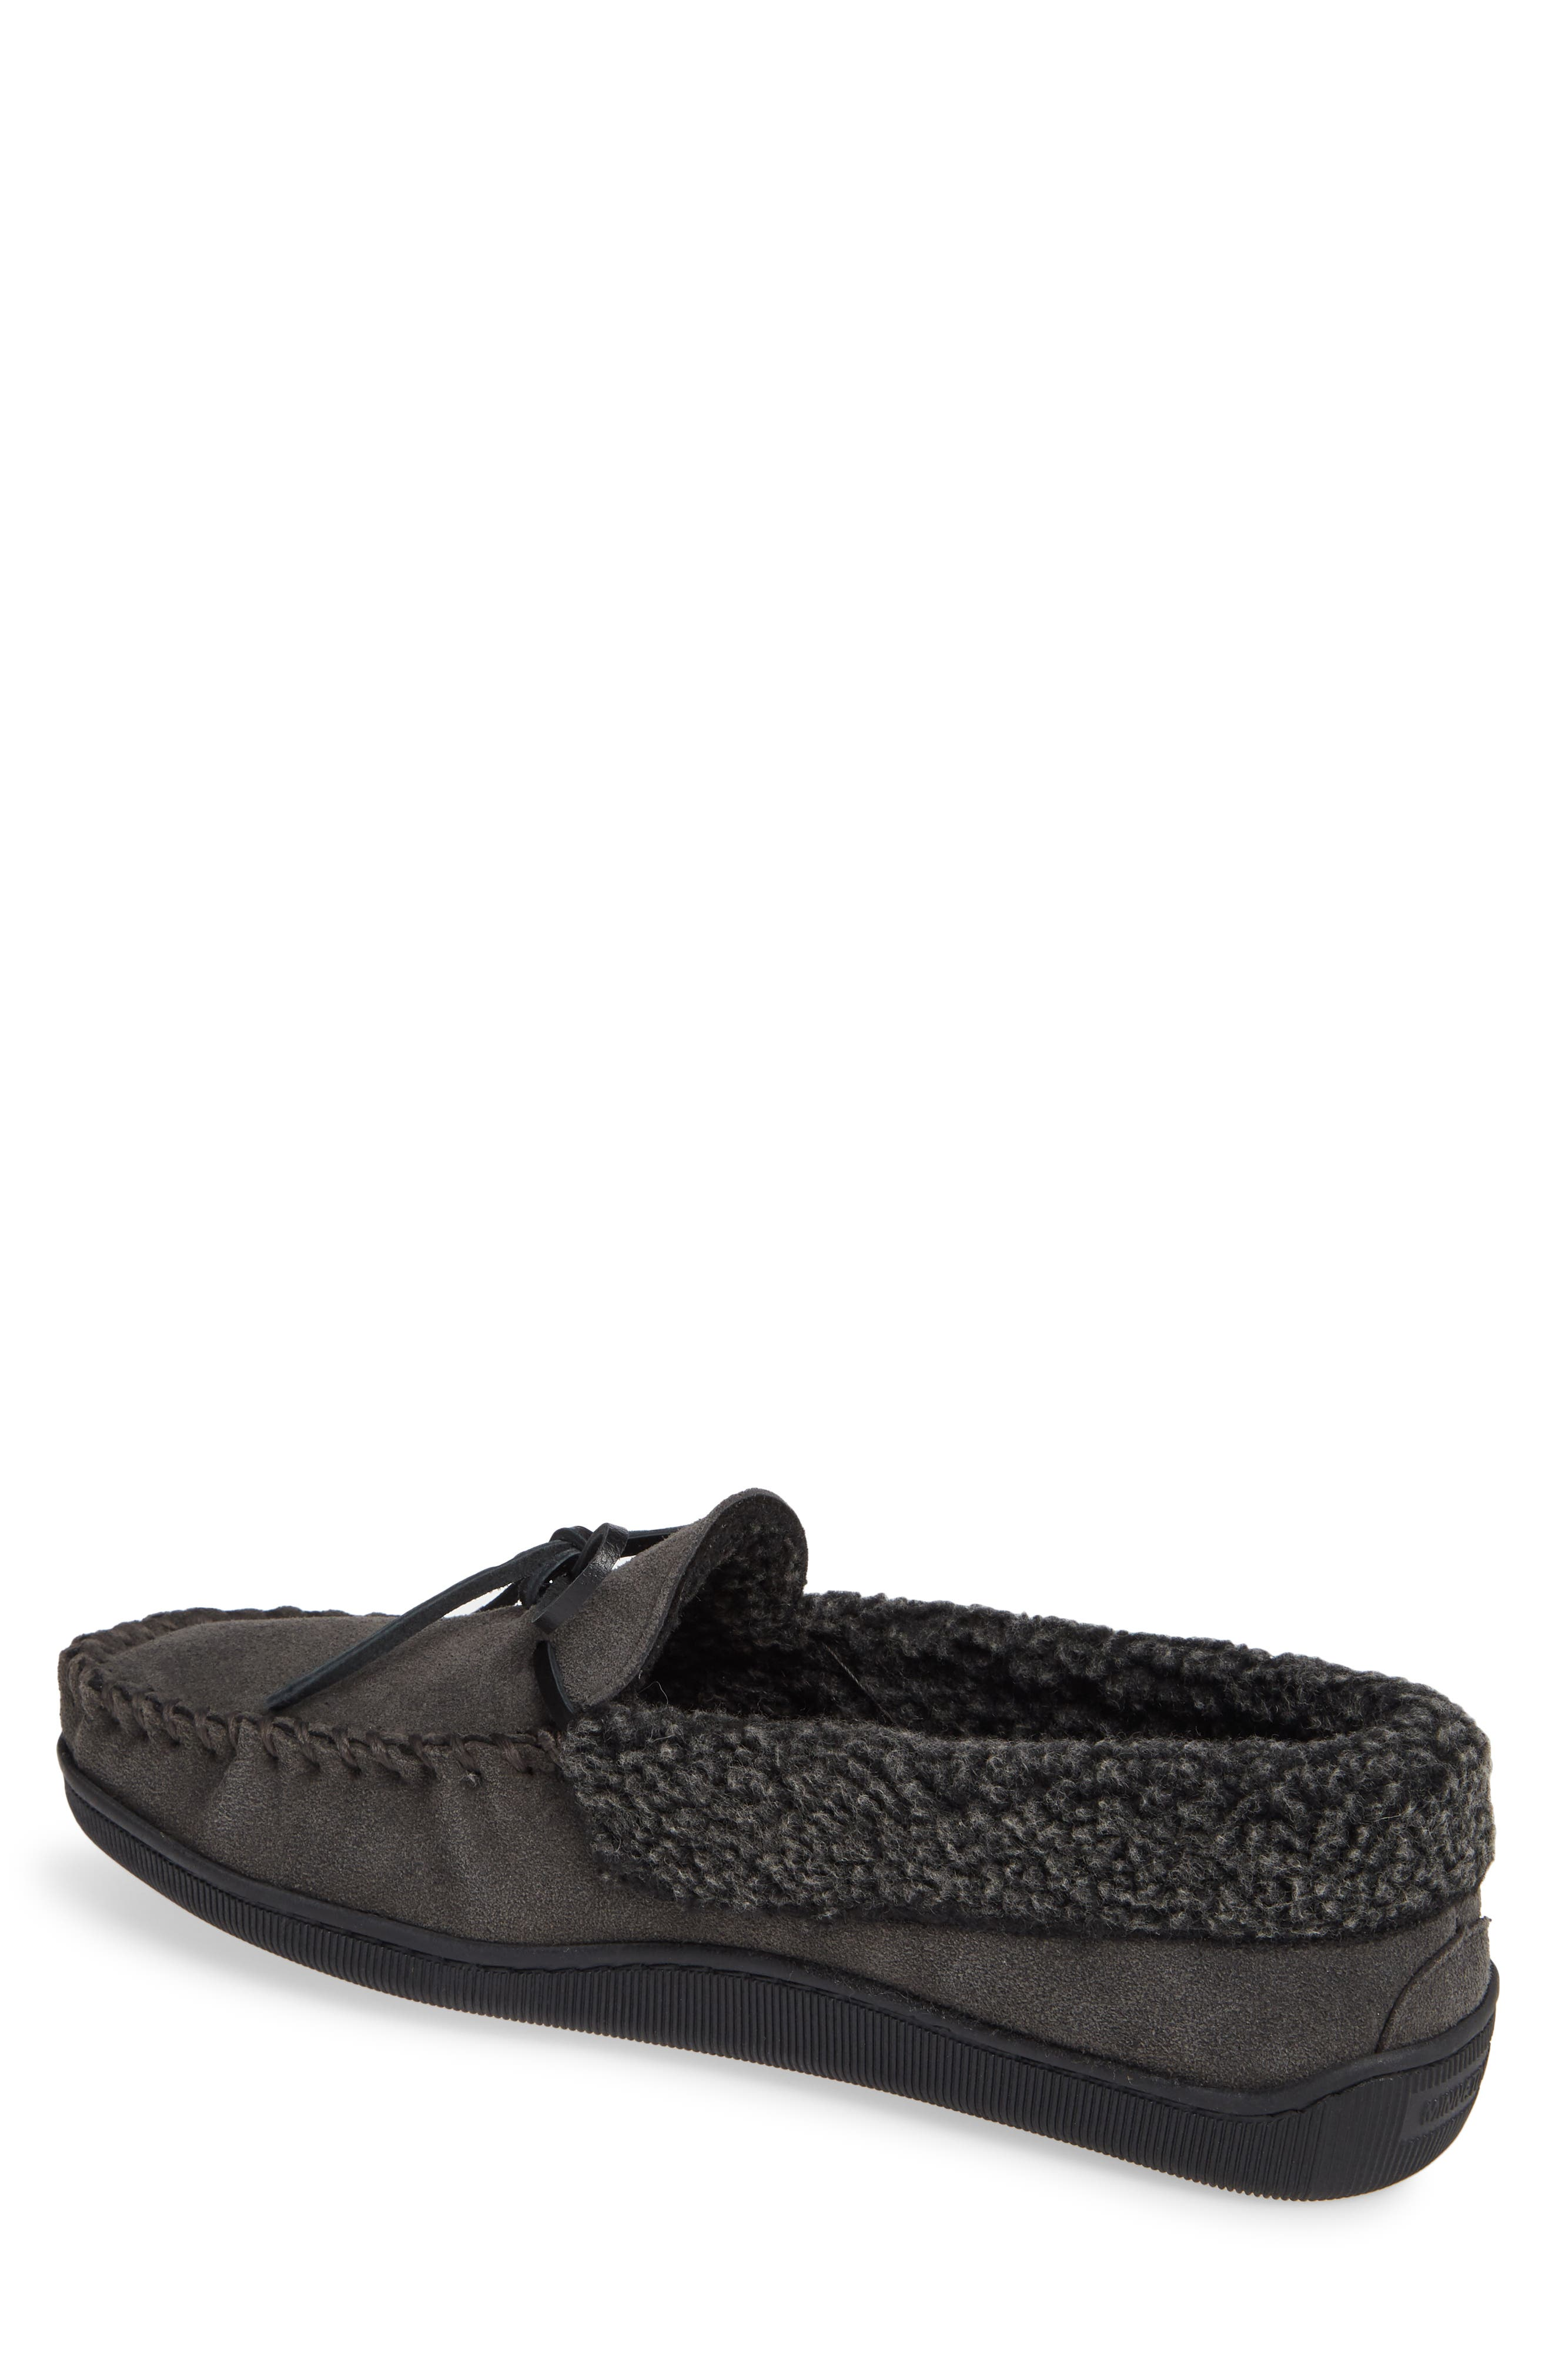 Allen Moccasin Slipper,                             Alternate thumbnail 2, color,                             CHARCOAL SUEDE